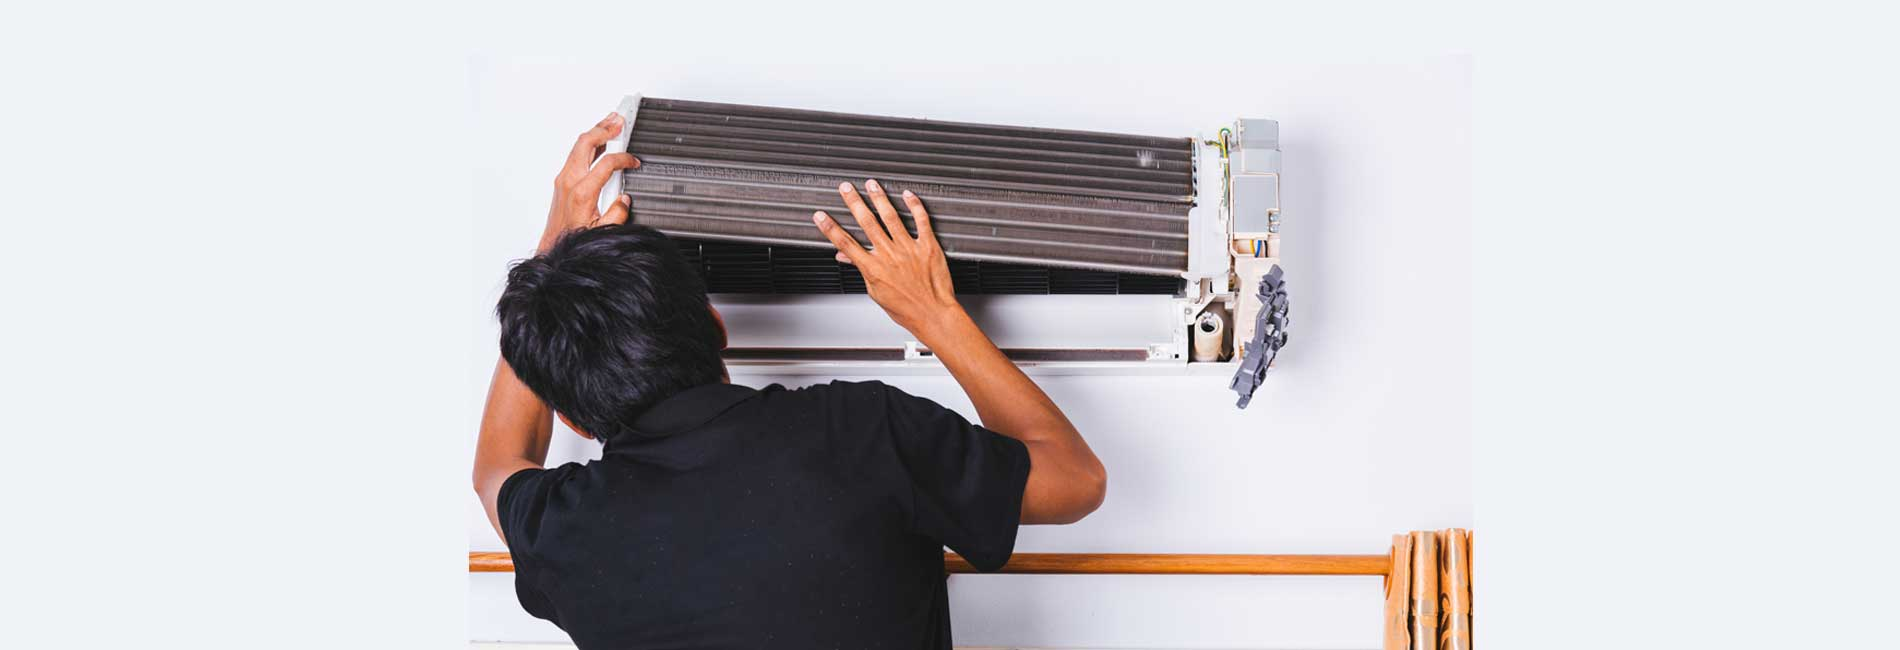 Panasonic AC Installation in Gopalapuram